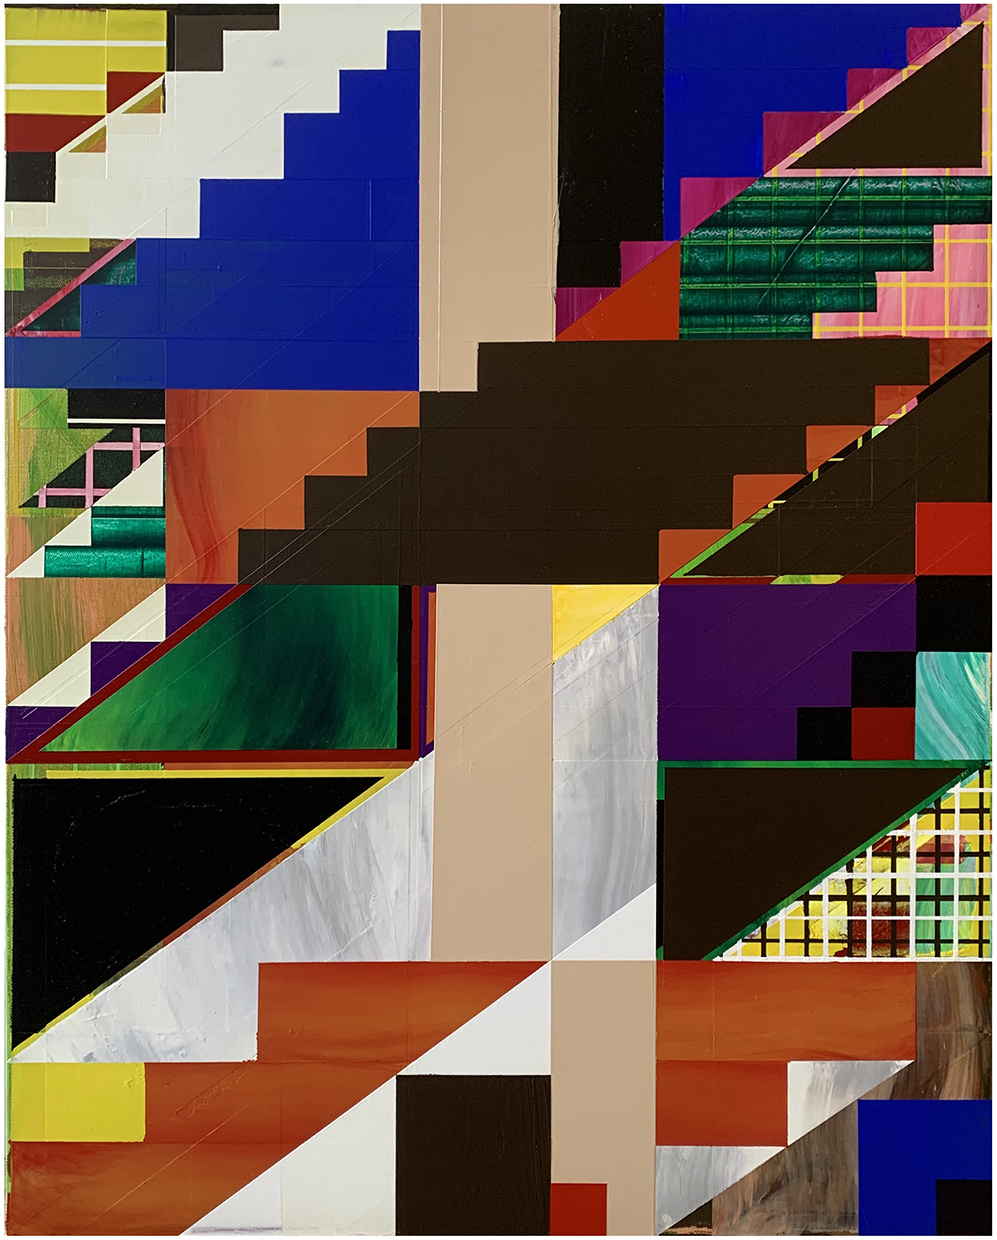 Paintings Escalator